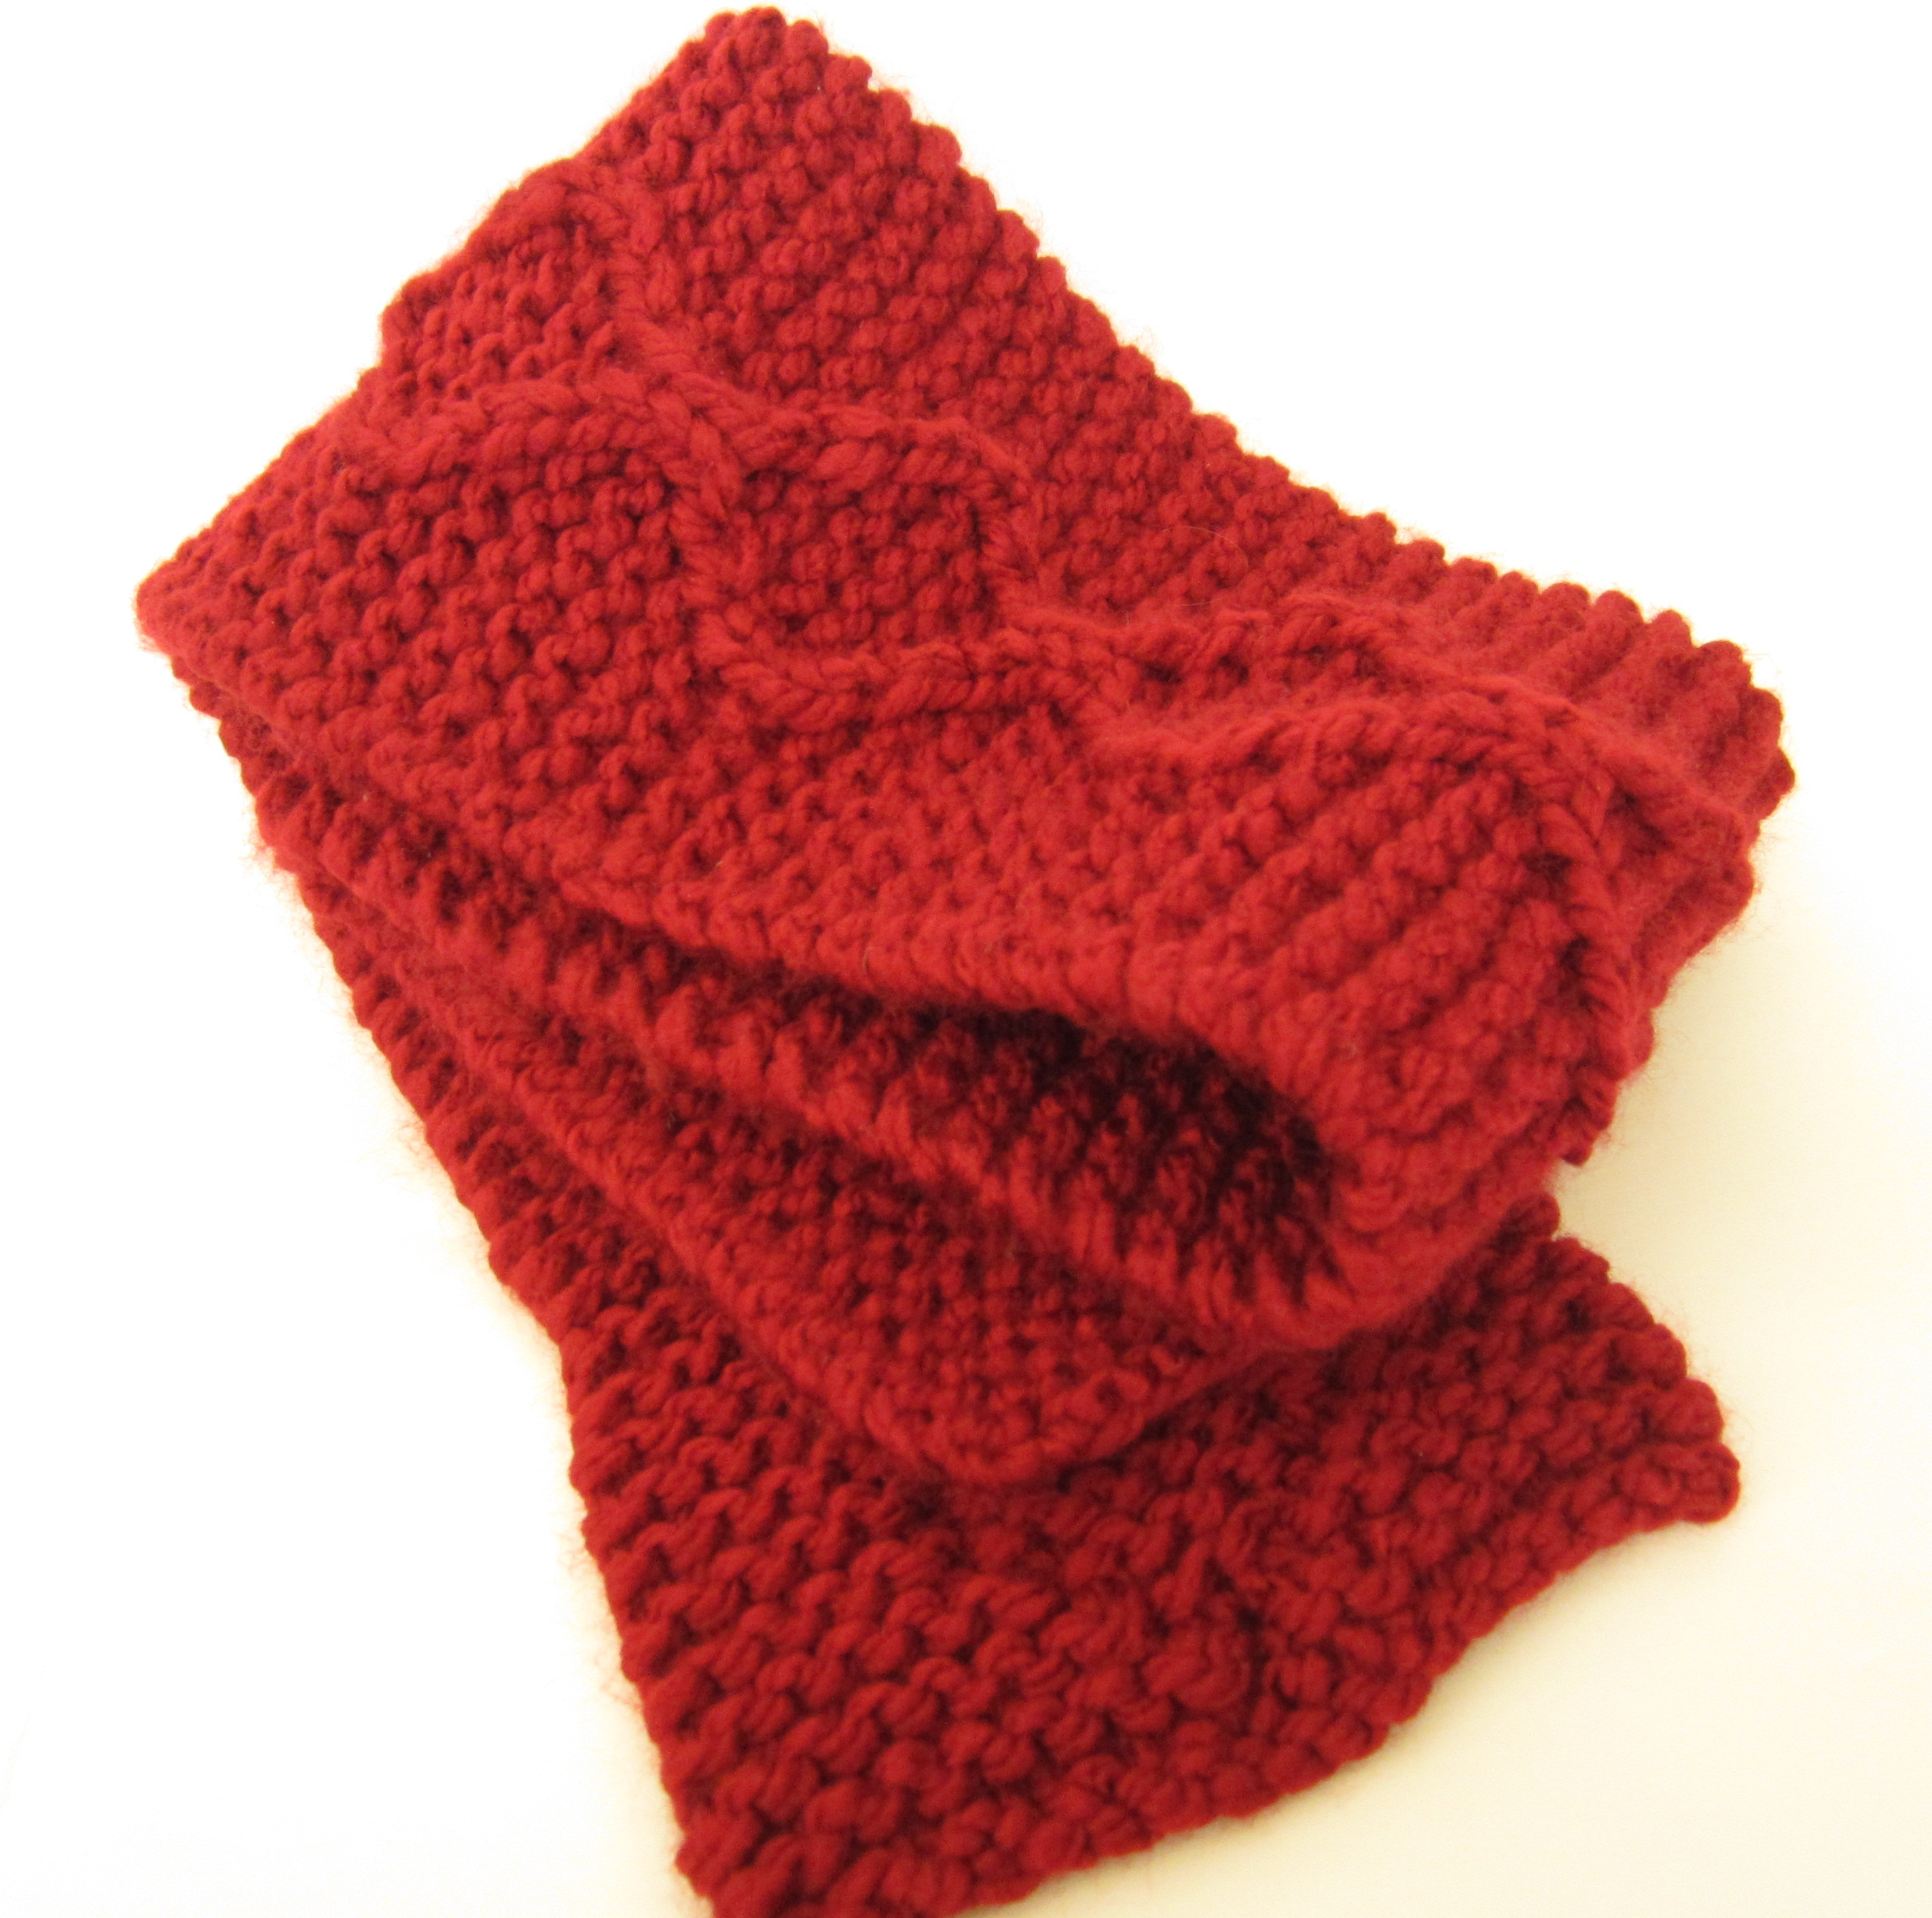 Knitting Pattern For Thick Scarf : Quick Free Knitting Pattern   Chunky Cable Scarf